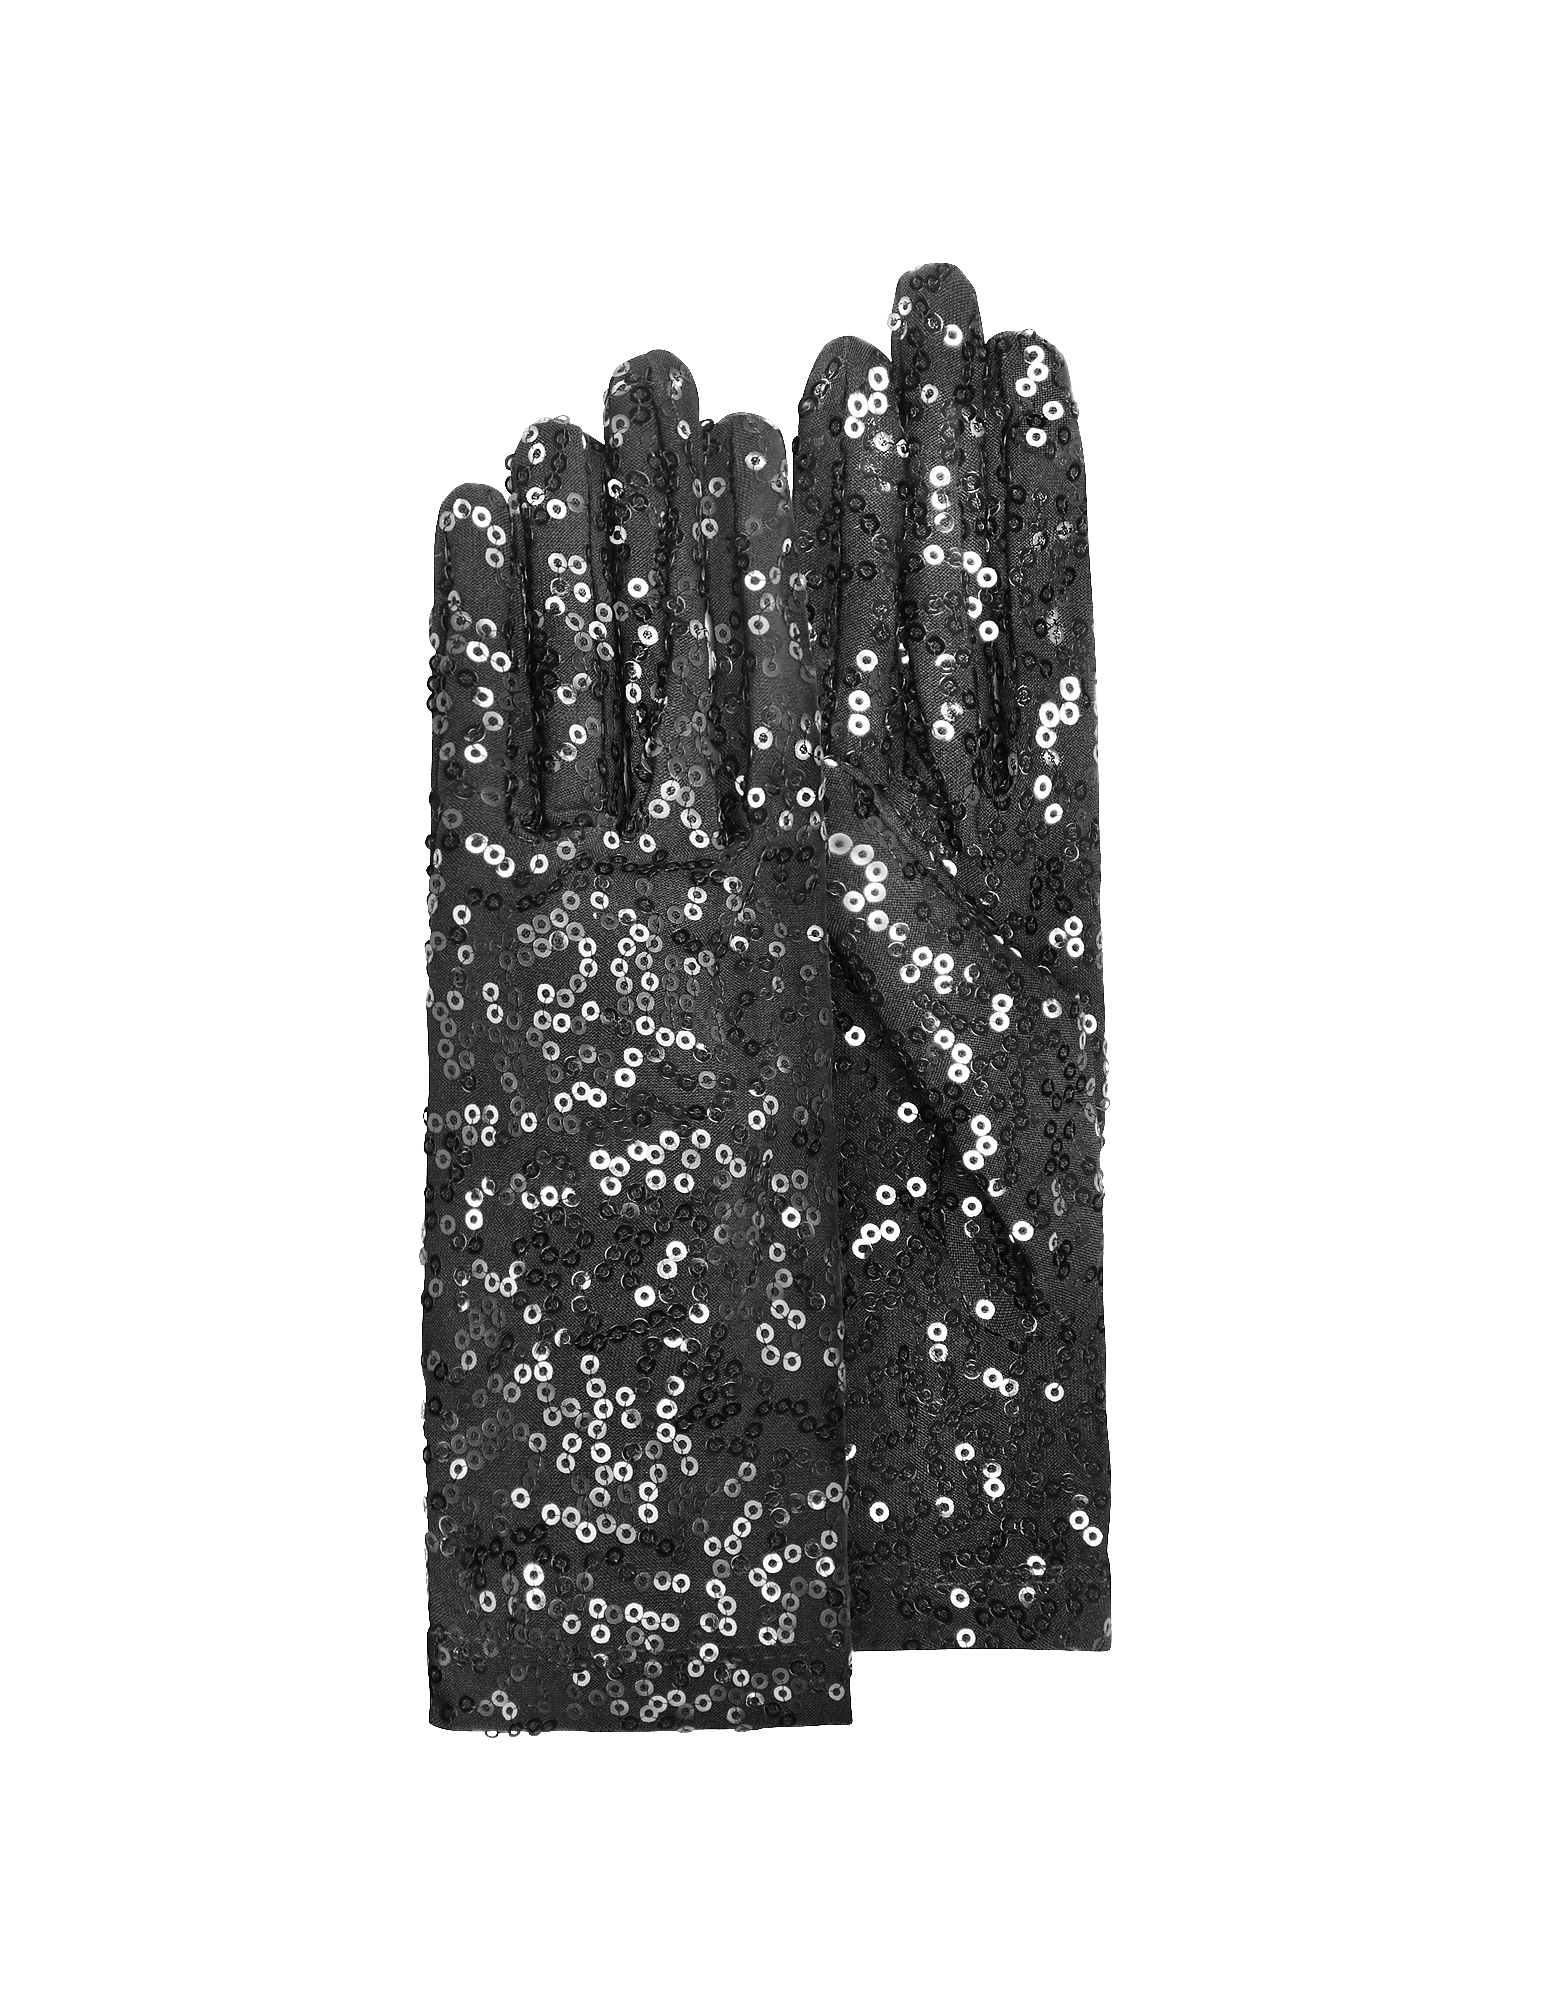 Forzieri Women's Gloves, Women's Black Sequin Gloves